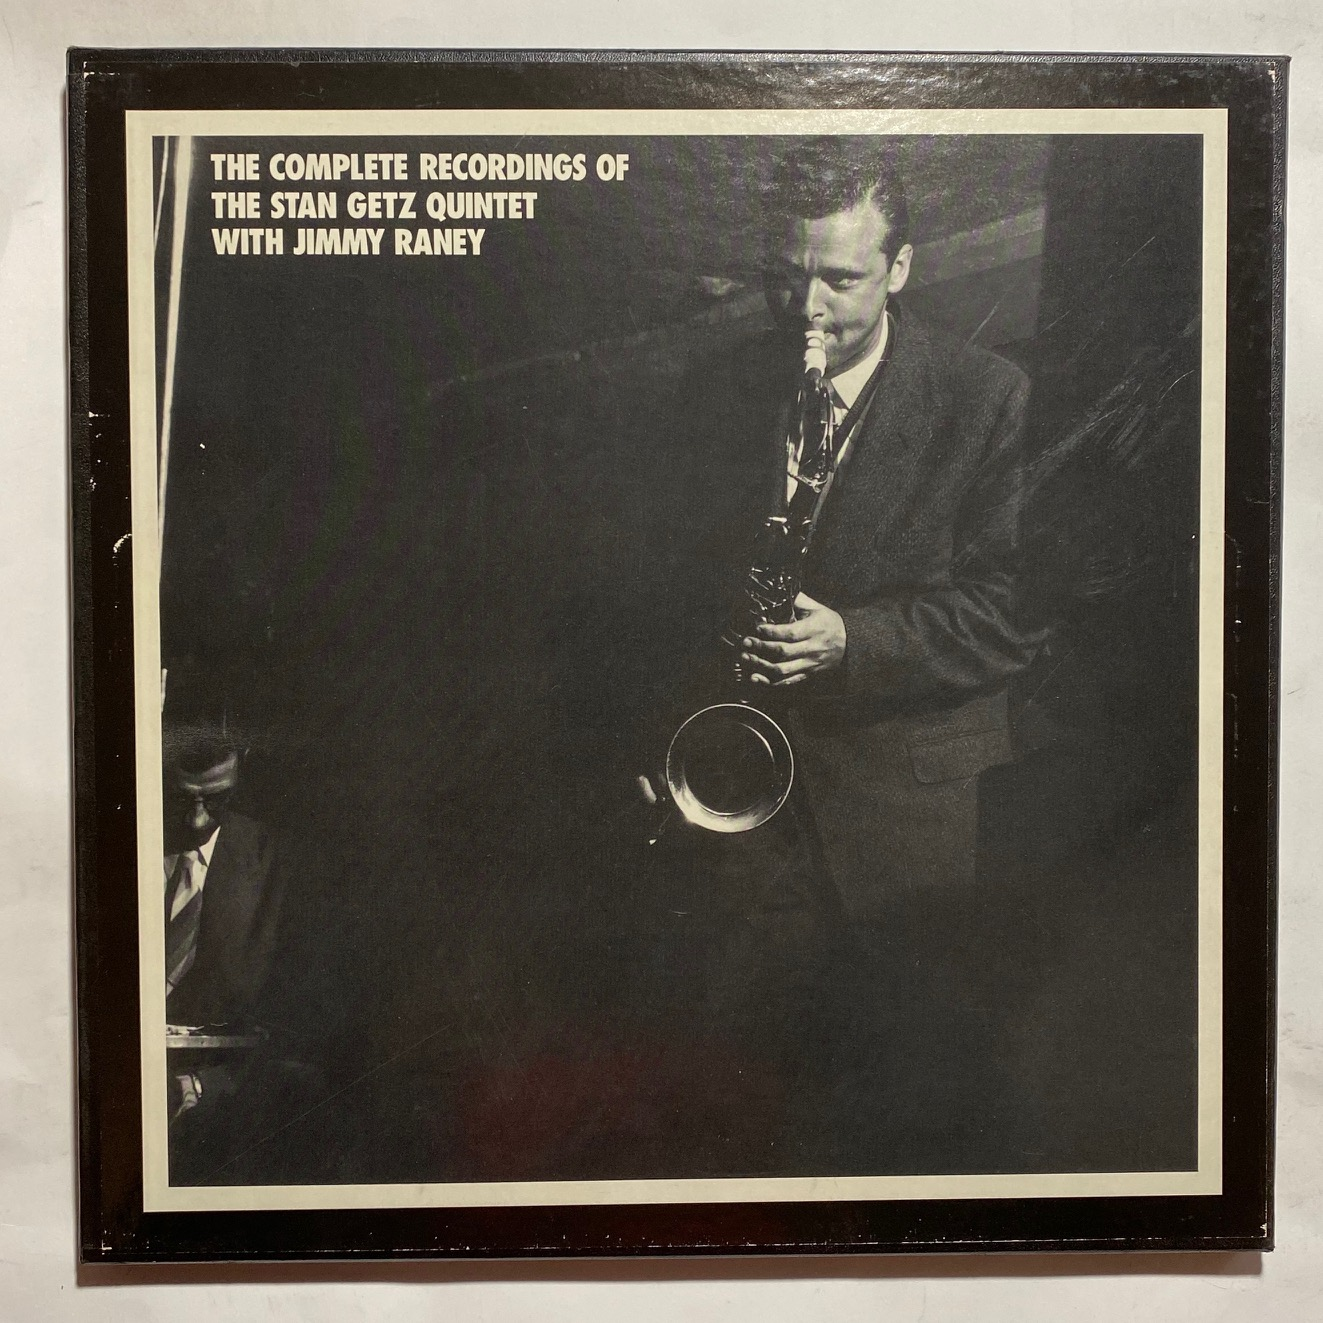 THE STAN GETZ QUINTET - The Complete Recordings Of The Stan Getz Quintet With Jimmy Raney - Coffret 33T